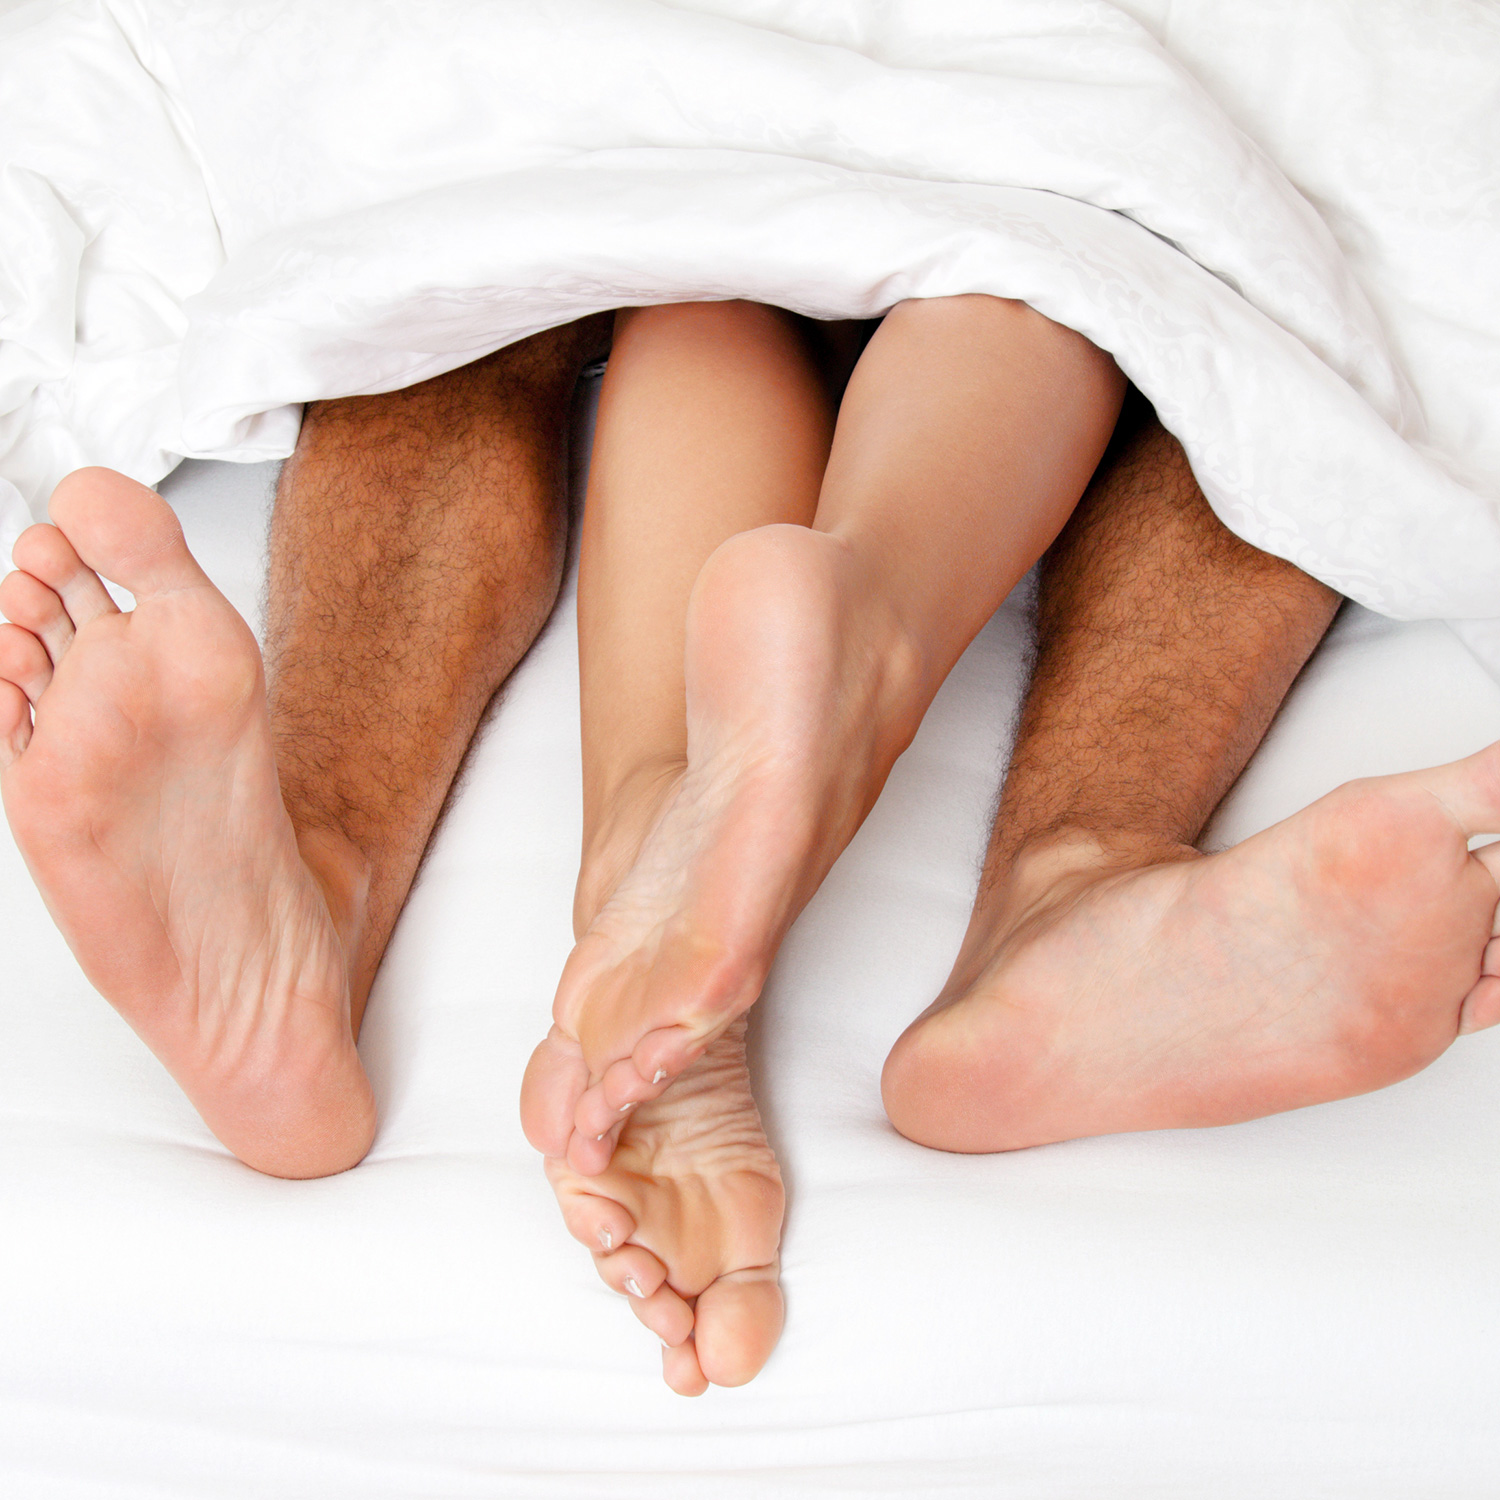 sex-couple-bed-feet.jpg